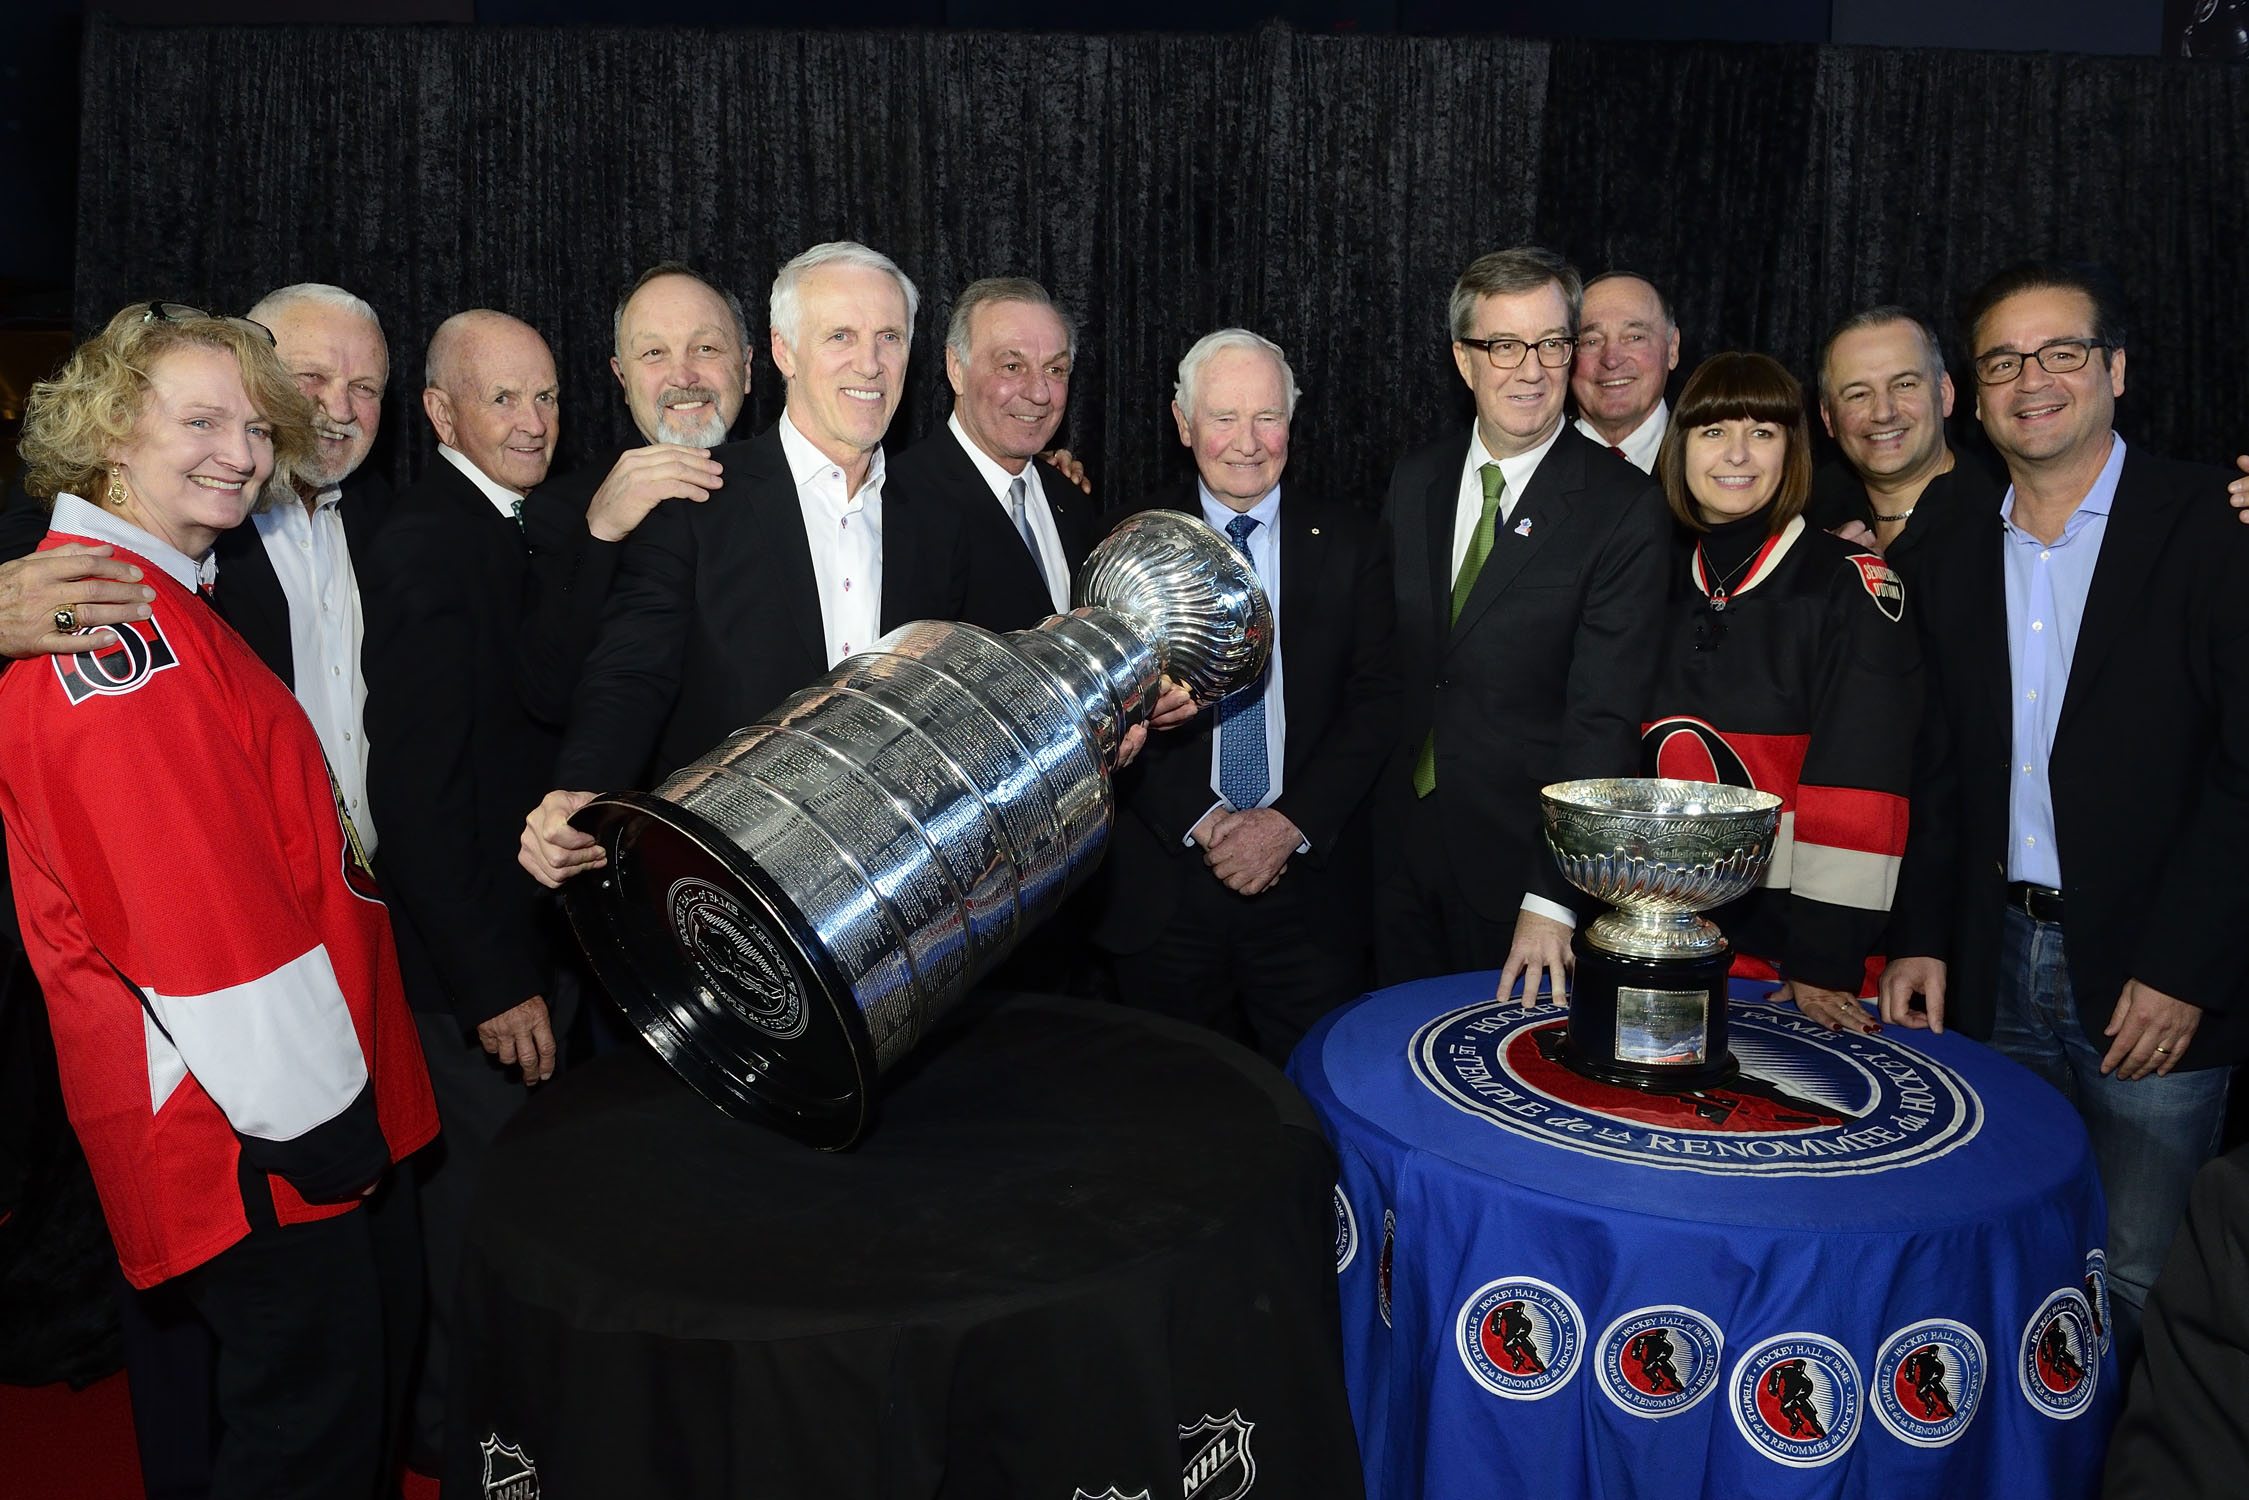 His Excellency the Right Honourable David Johnston, Governor General of Canada,